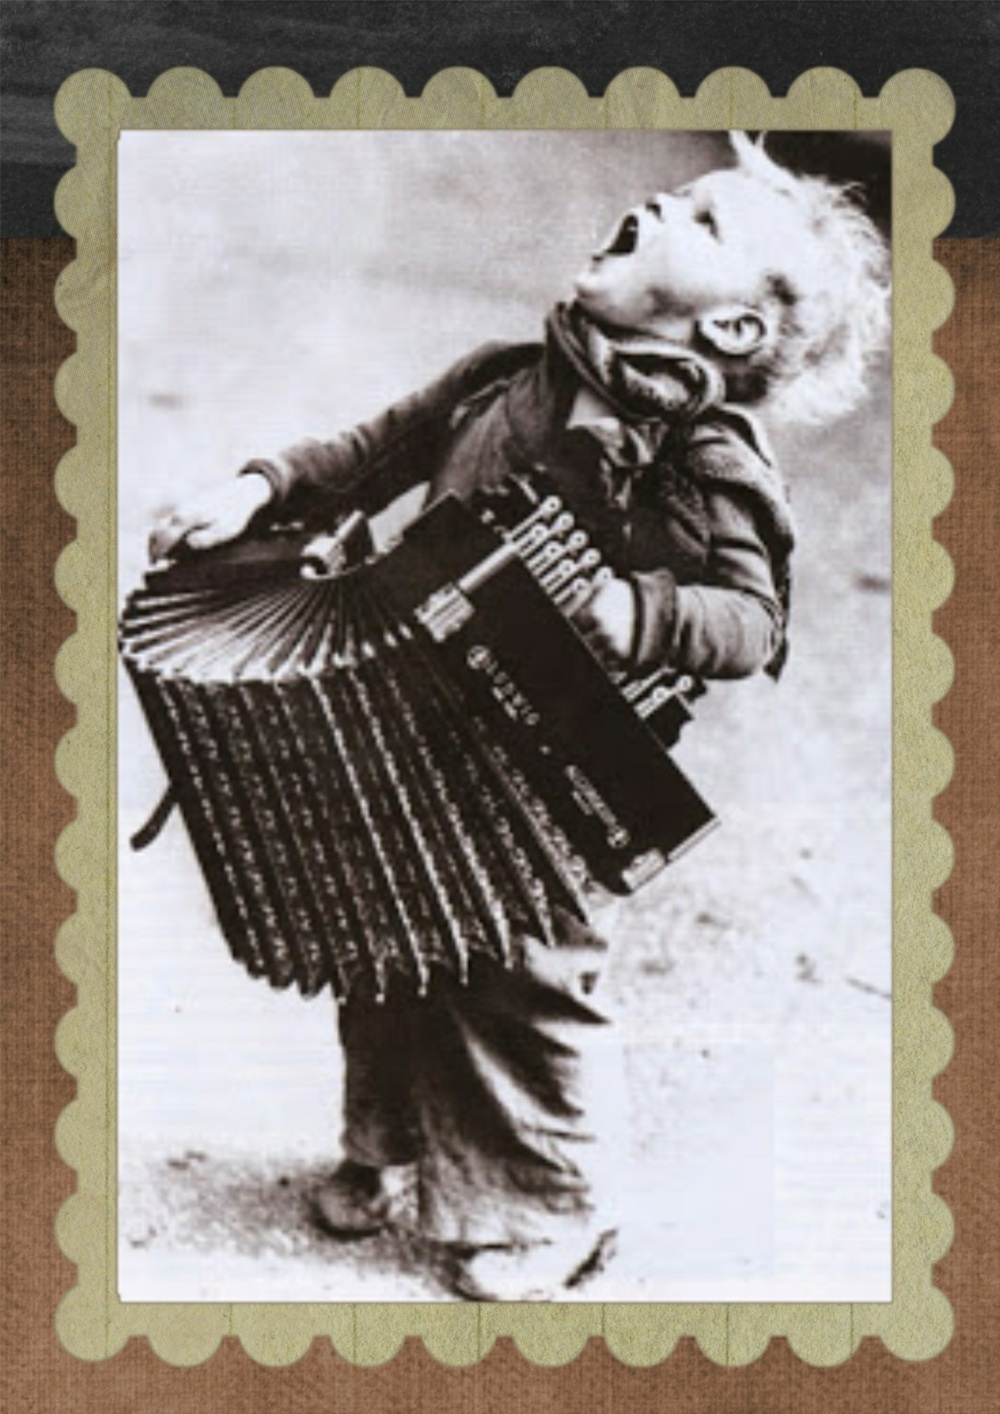 music-vintage-boy-kid-old-portrait-616472-pxhere.com